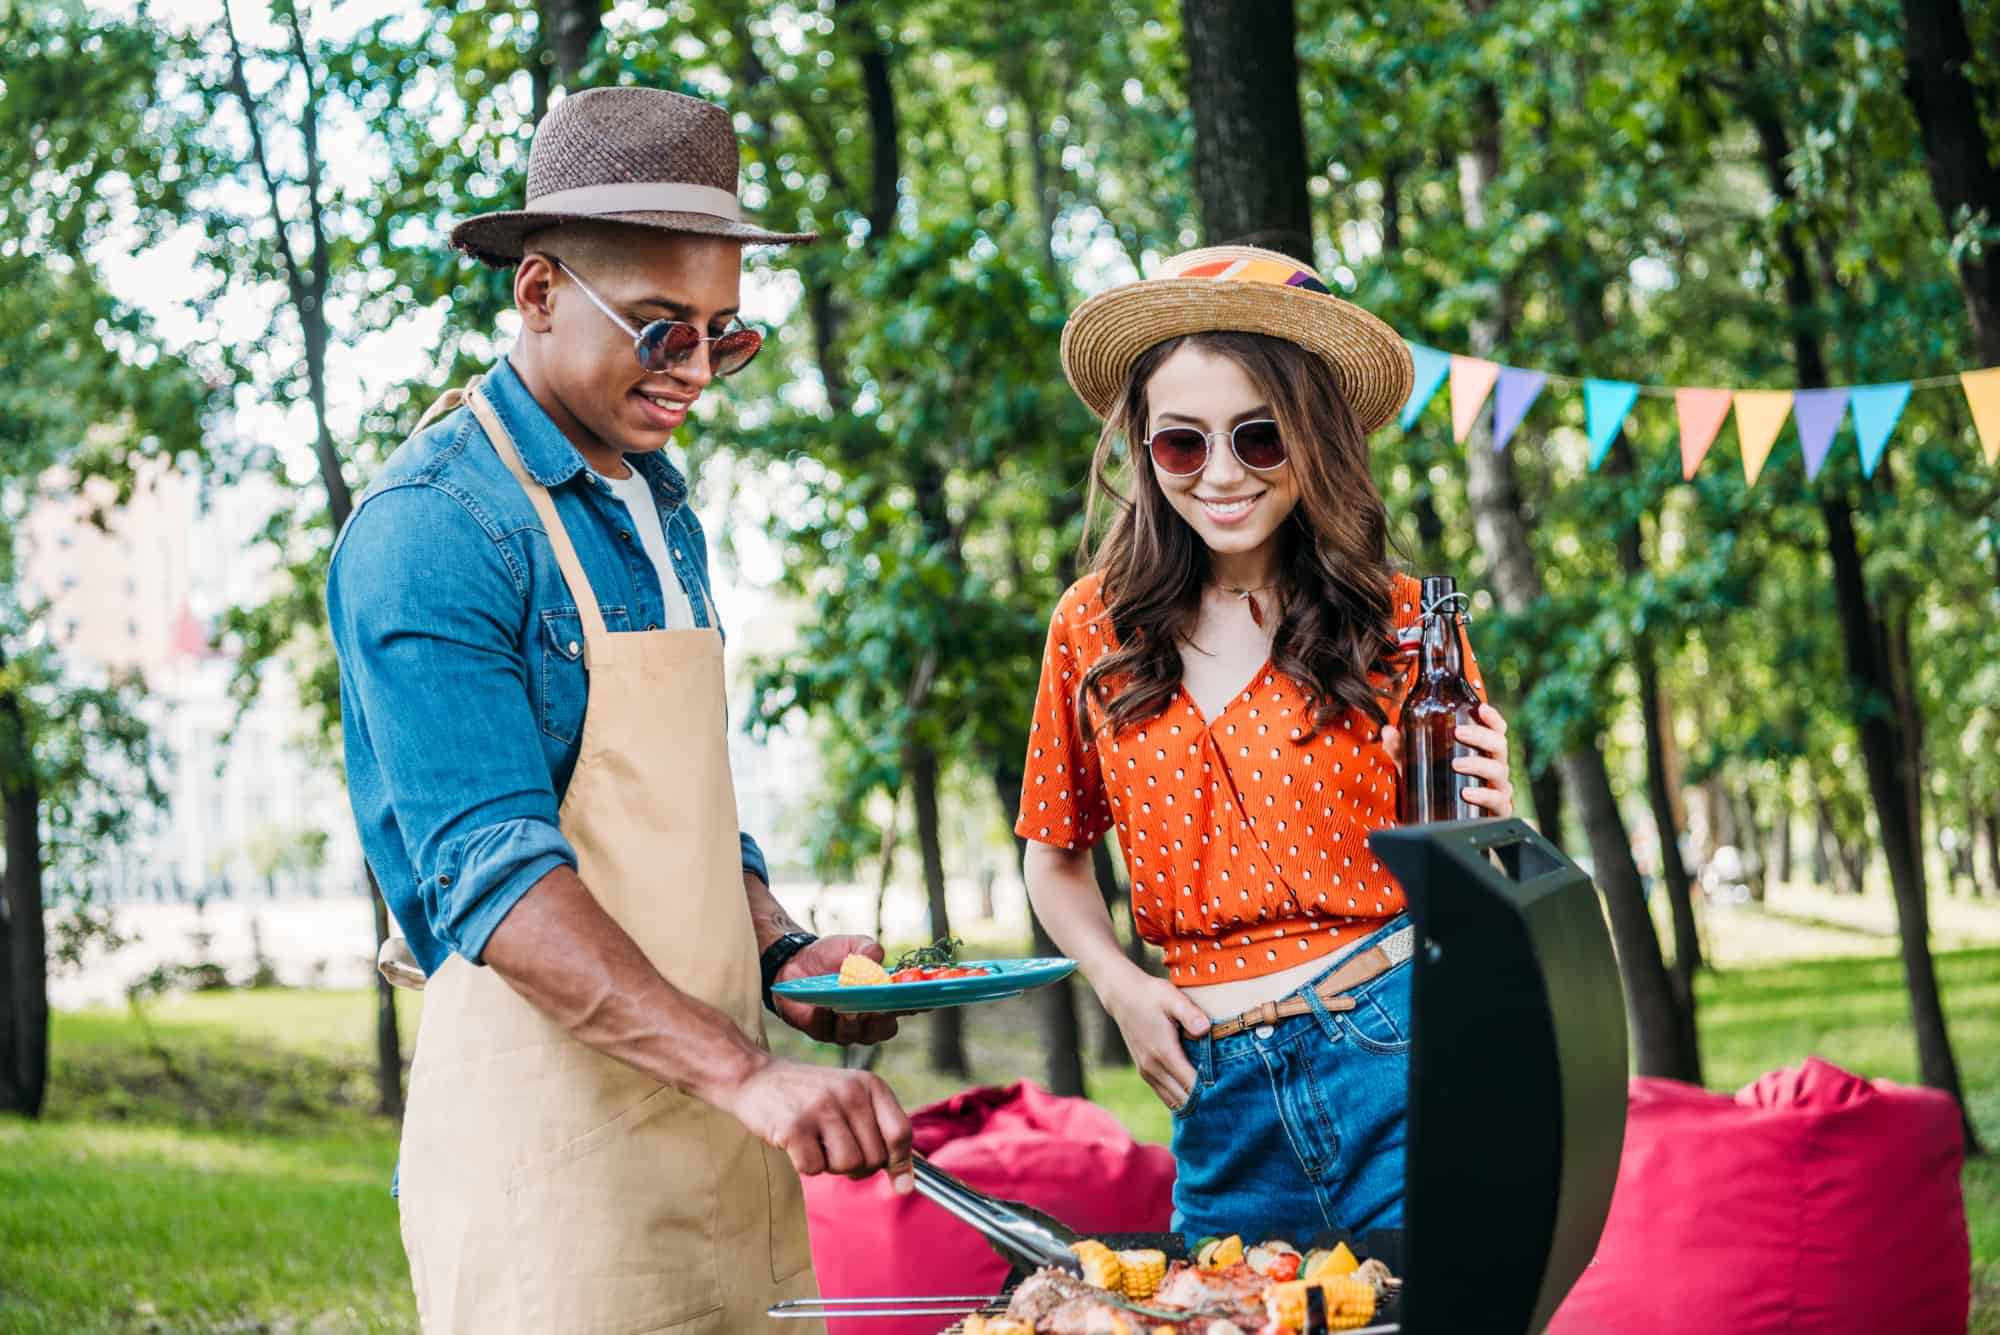 Happy smiling couple grilling in a park thinking about being a business owner as a chef